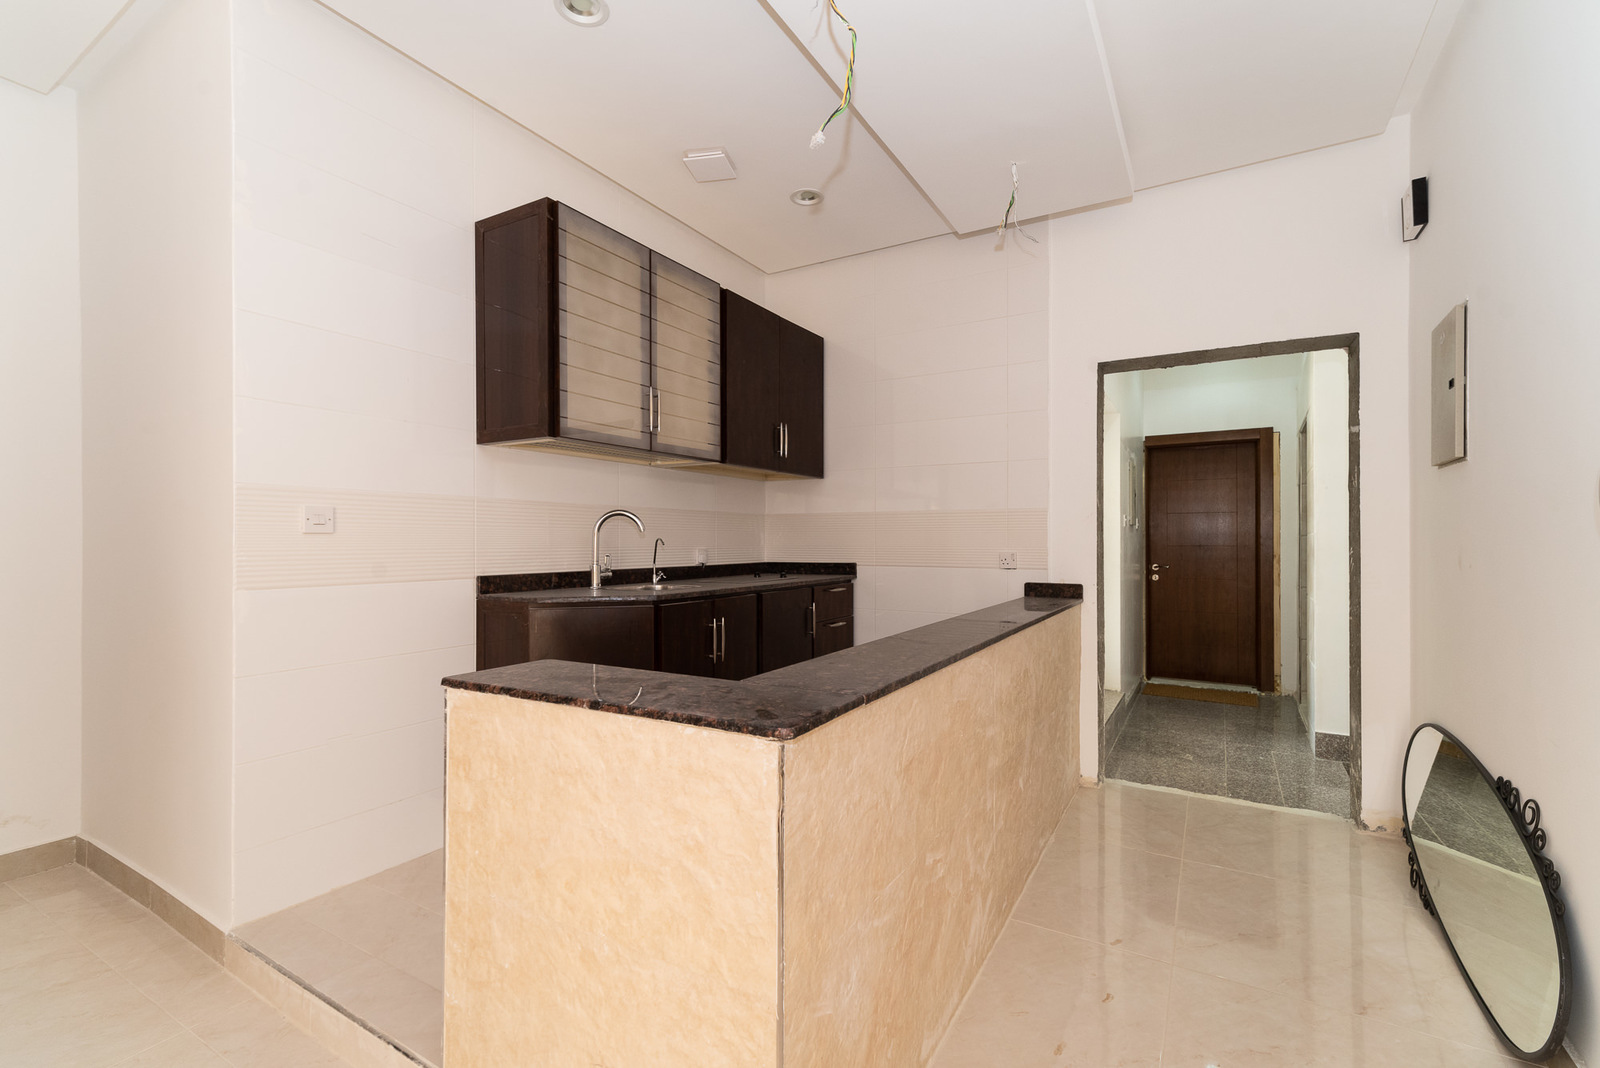 Bayan – new, unfurnished, 1 bedroom apartment